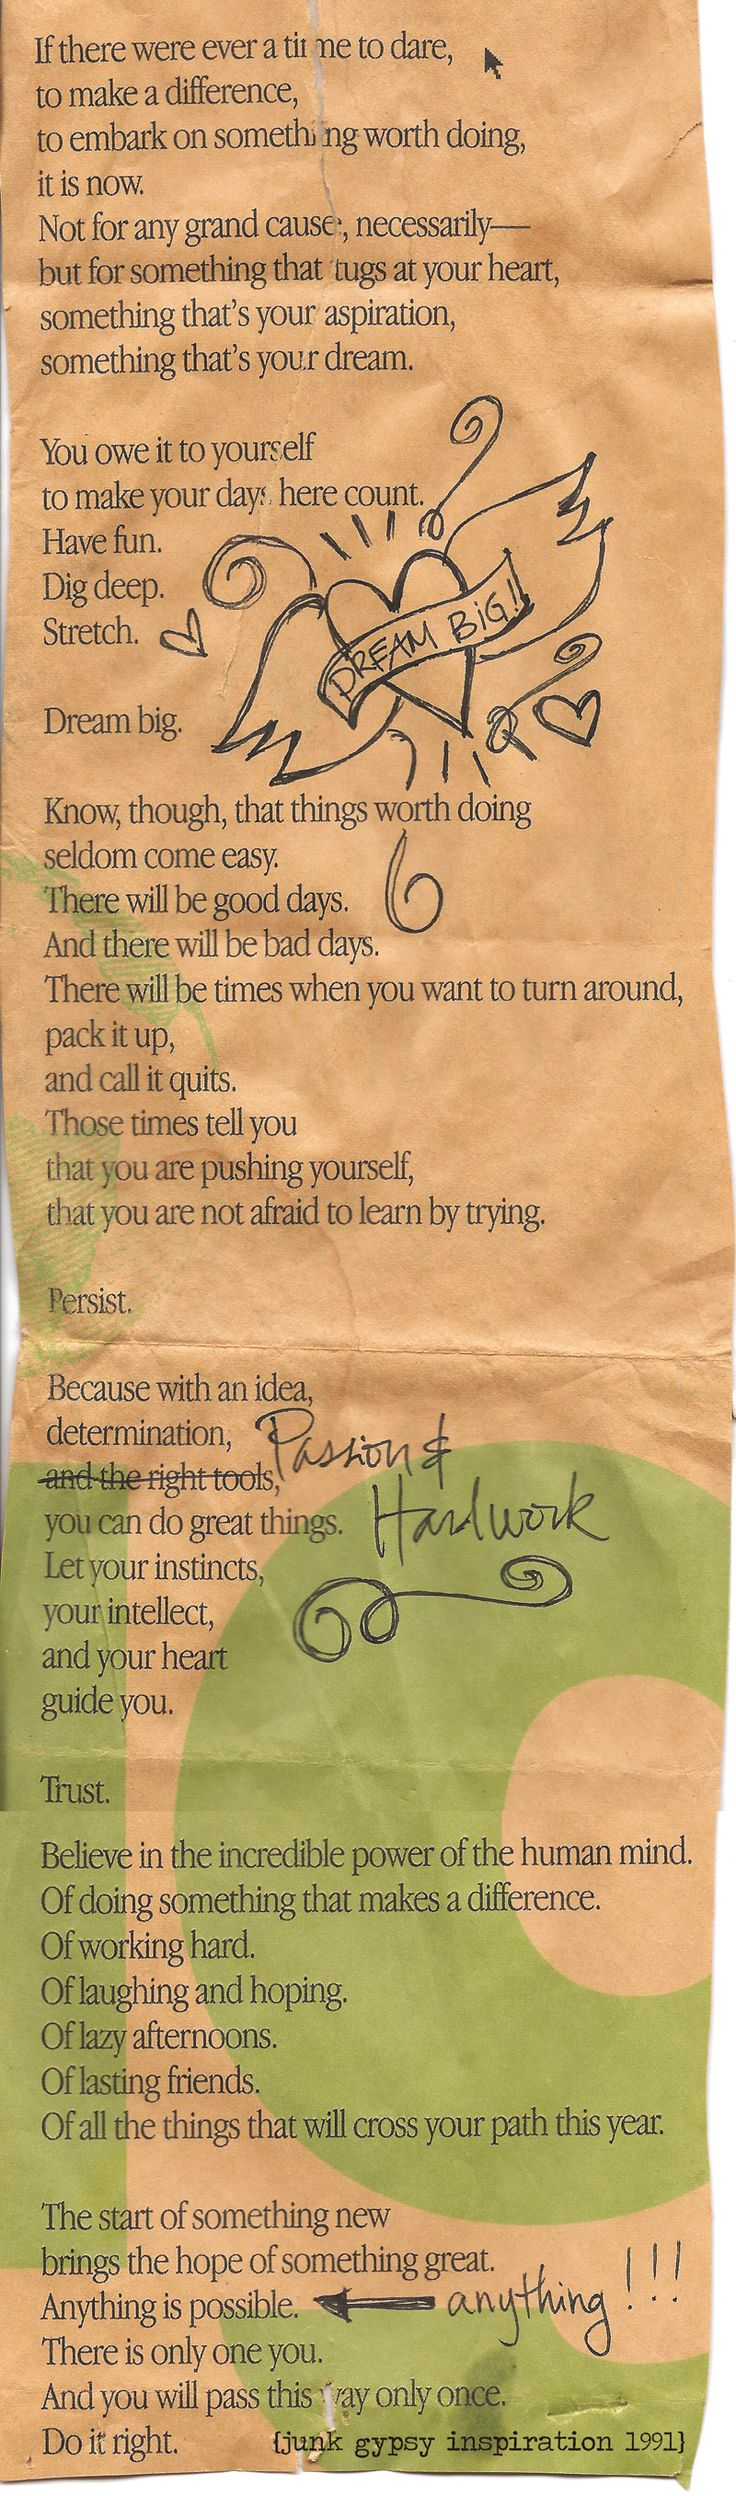 this has been on our bulletin board since 1991! I was a freshman in college and I cut this out of the TAMU Battalion and mailed it to Jolie while she was still in high school . . . with all its water stains and years of traveling the miles with us  . . . it's STILL one of the most inspirational scraps on our bulletin board! we hope yall love it like we do!  {junk gypsy co} #inspiration #dreambig #workhard